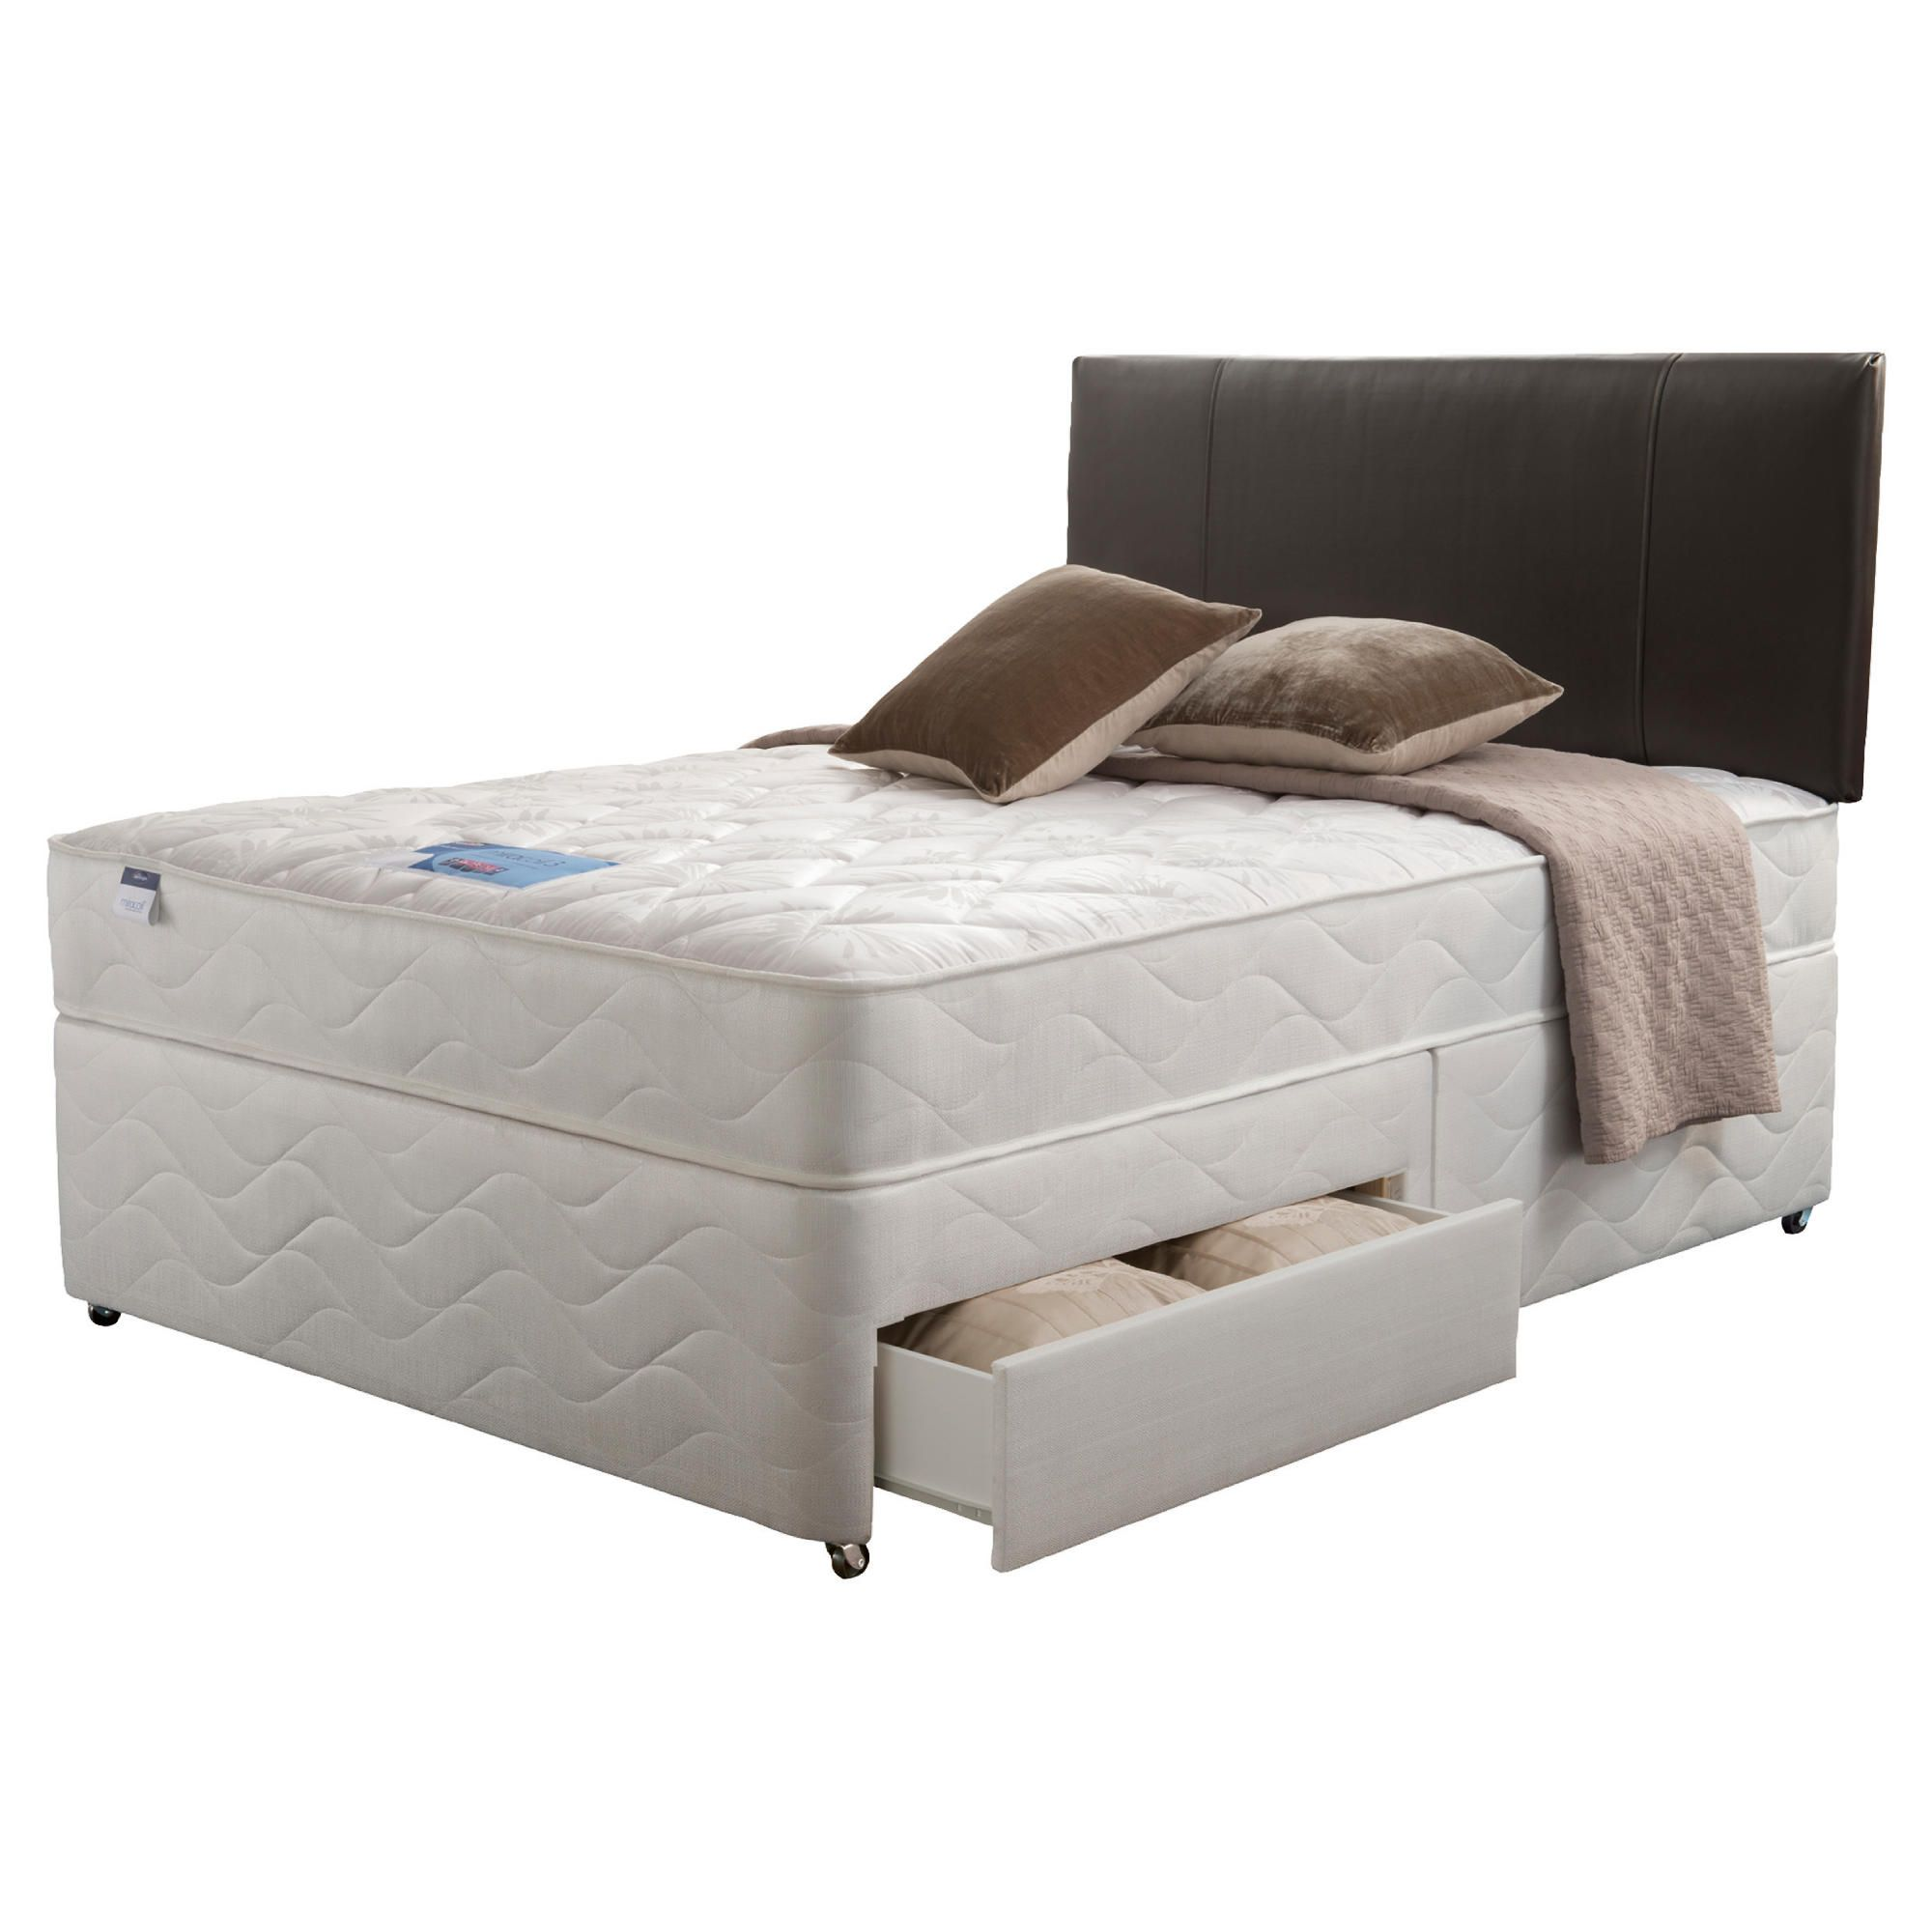 Silentnight Miracoil Kingston King 4 Drawer Divan set at Tesco Direct